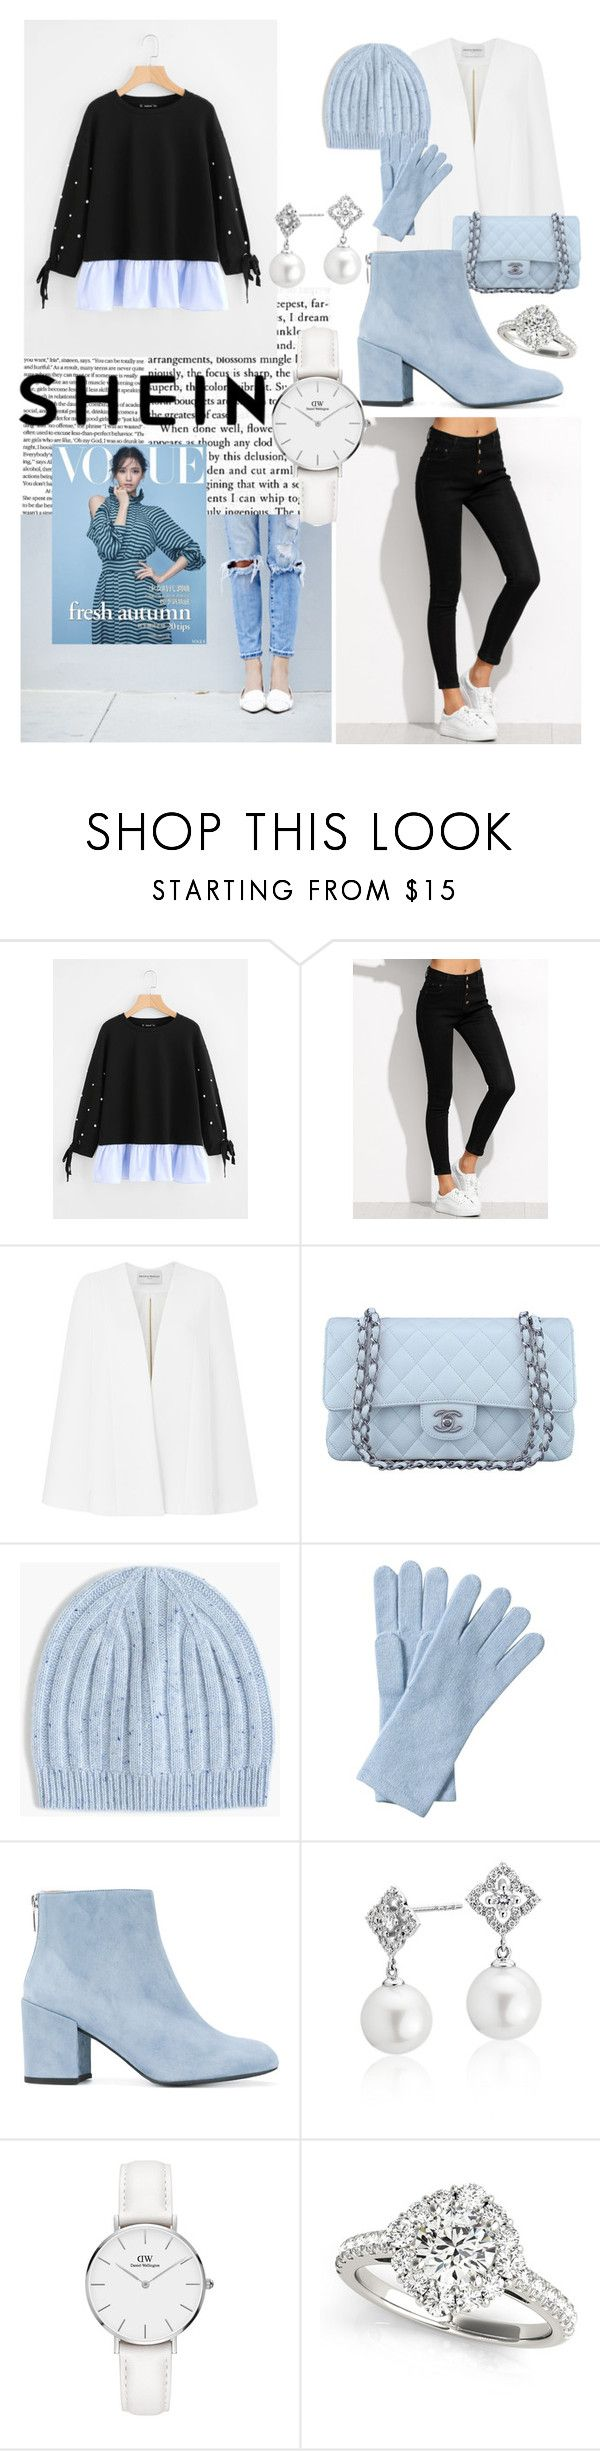 """Untitled #60"" by alicesandberg ❤ liked on Polyvore featuring Amanda Wakeley, Chanel, J.Crew, Pure Collection, Stuart Weitzman, Blue Nile, Daniel Wellington and Allurez"